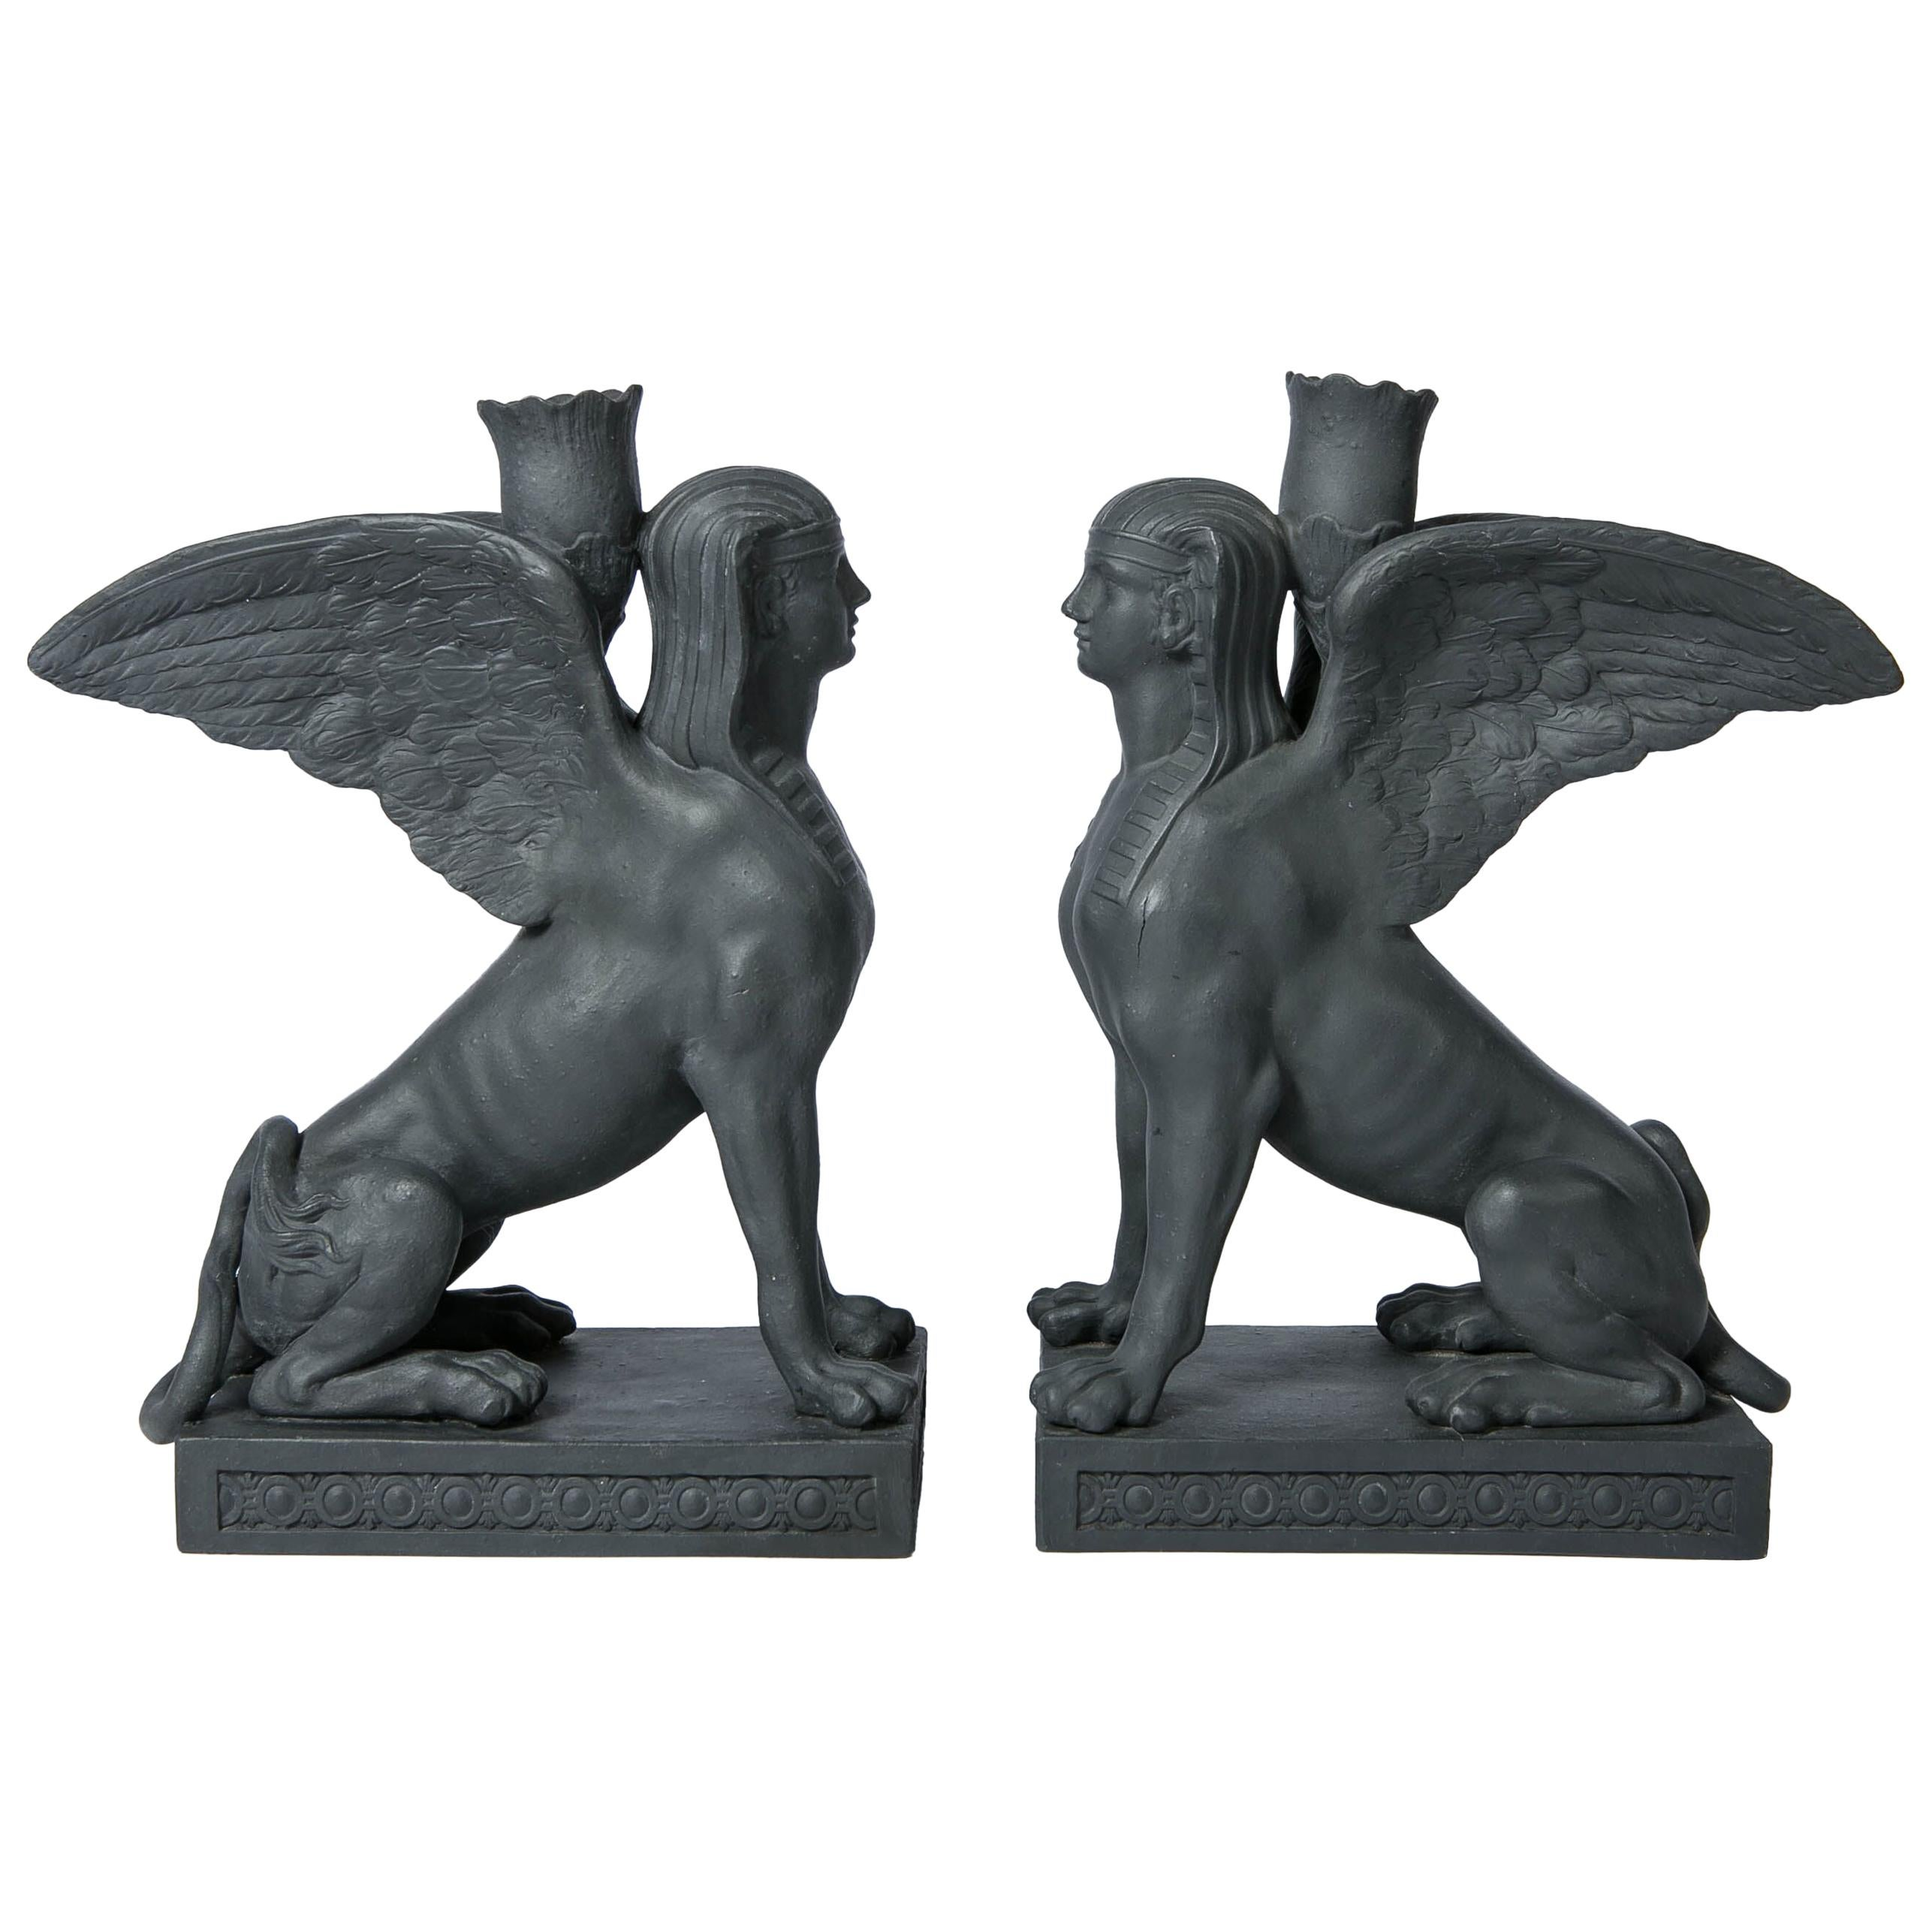 Pair of Wedgwood Egyptian Revival Black Basalt Sphinxes Made 18th Century